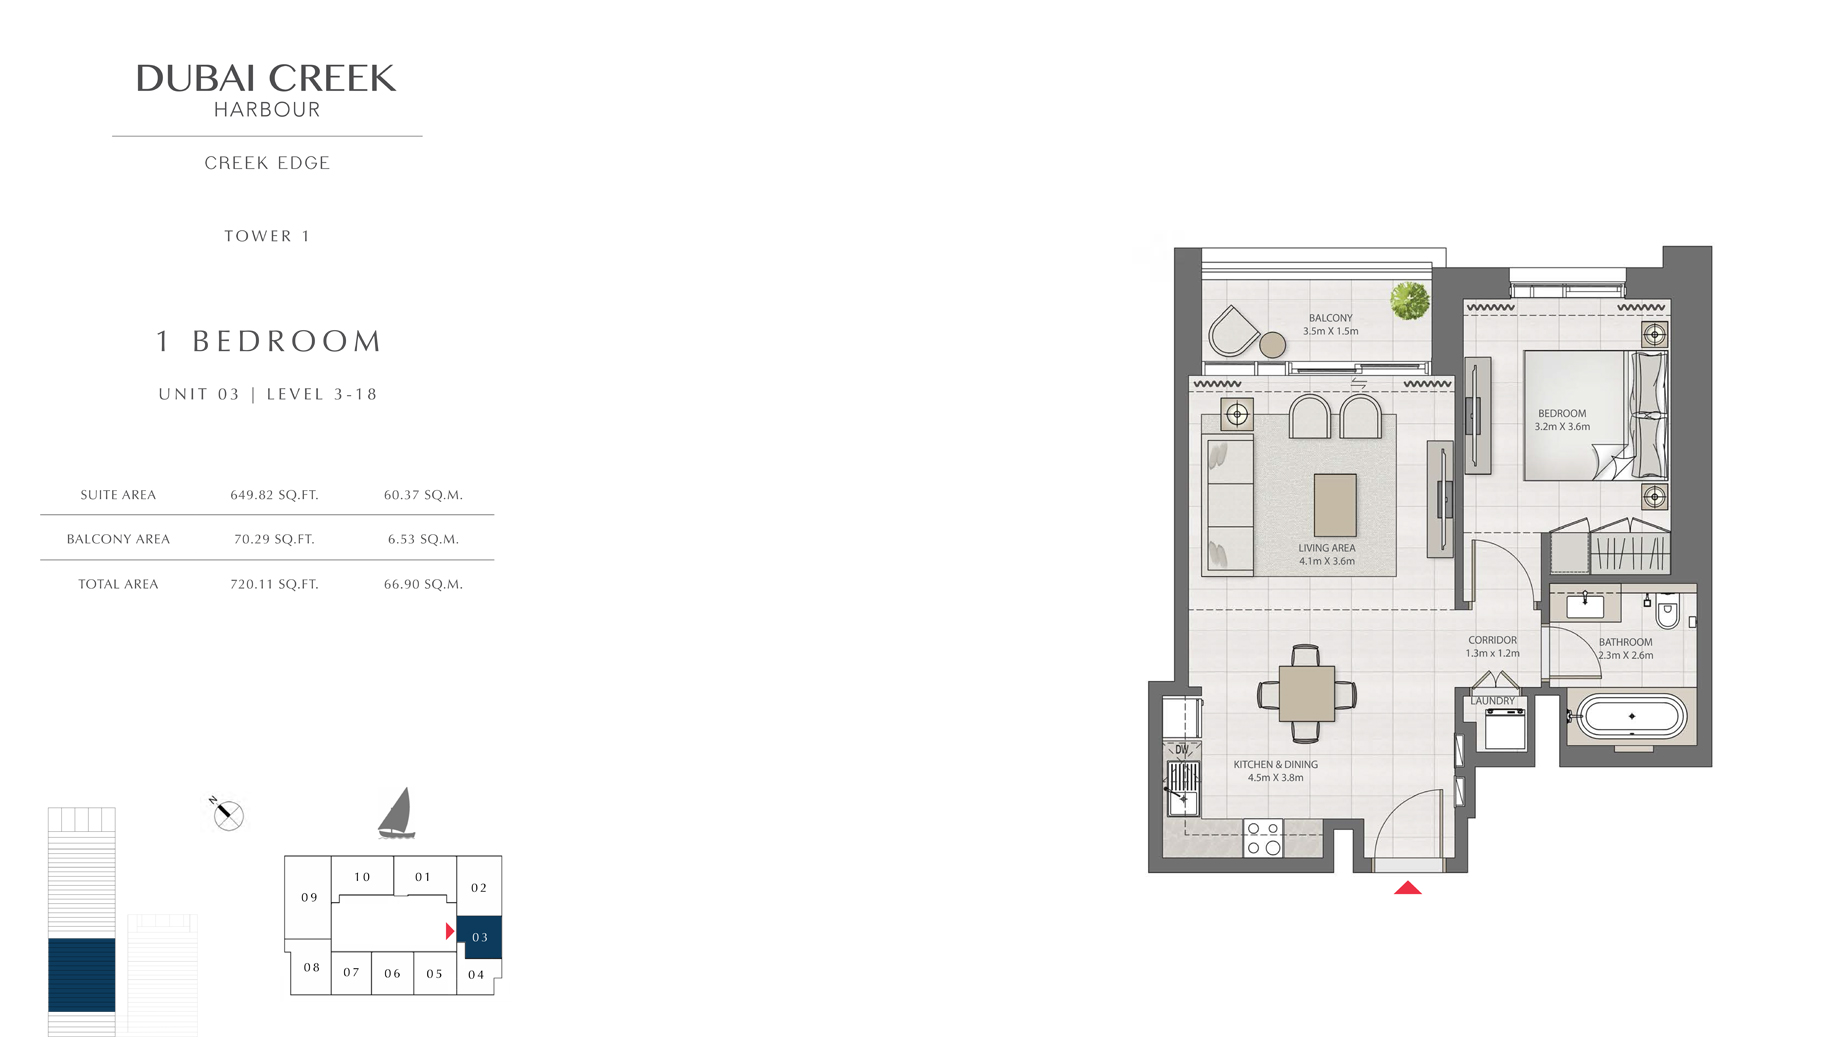 1  Bedroom Tower 1 Unit 03 Level 3 -18 Size 720 sq.ft